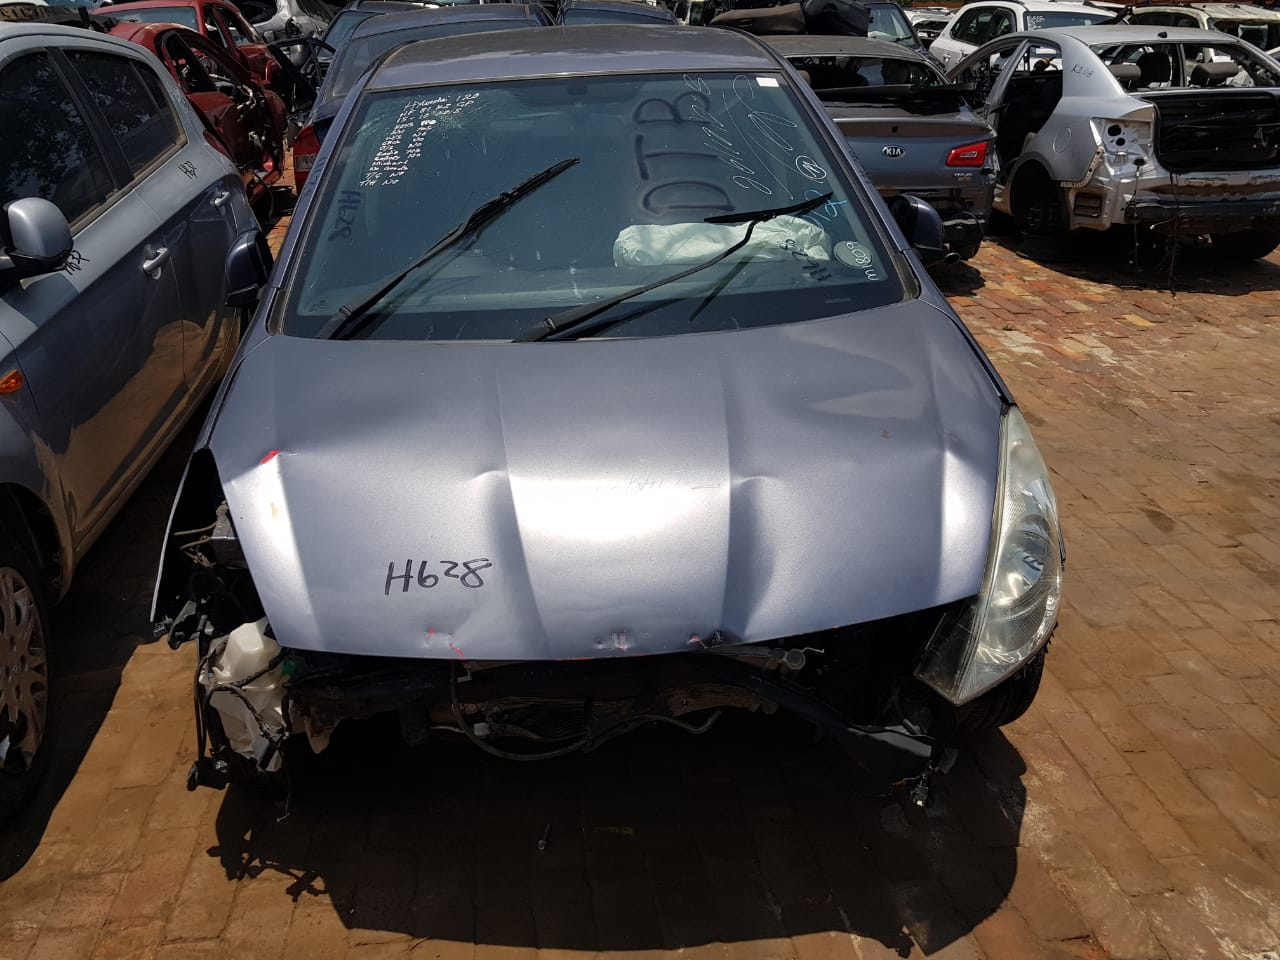 Hyundai I20 Spares and Parts For Sale At DTB Spares